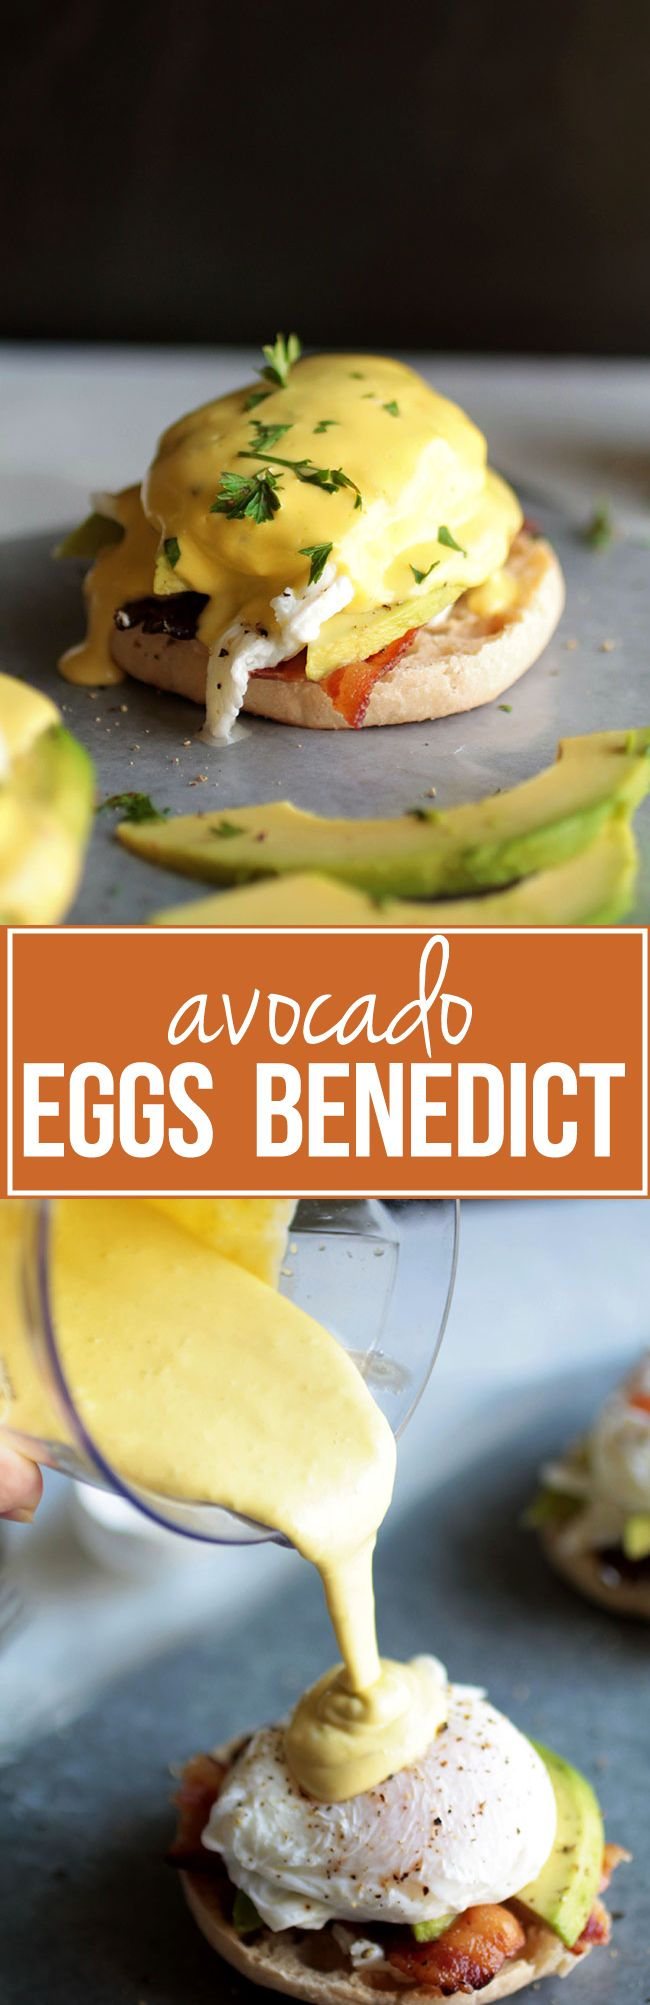 Avocado Eggs Benedict | Mix up your brunch routine with this easy, creamy, delicious avocado eggs benedict! Easy homemade hollandaise sauce using an immersion blender.